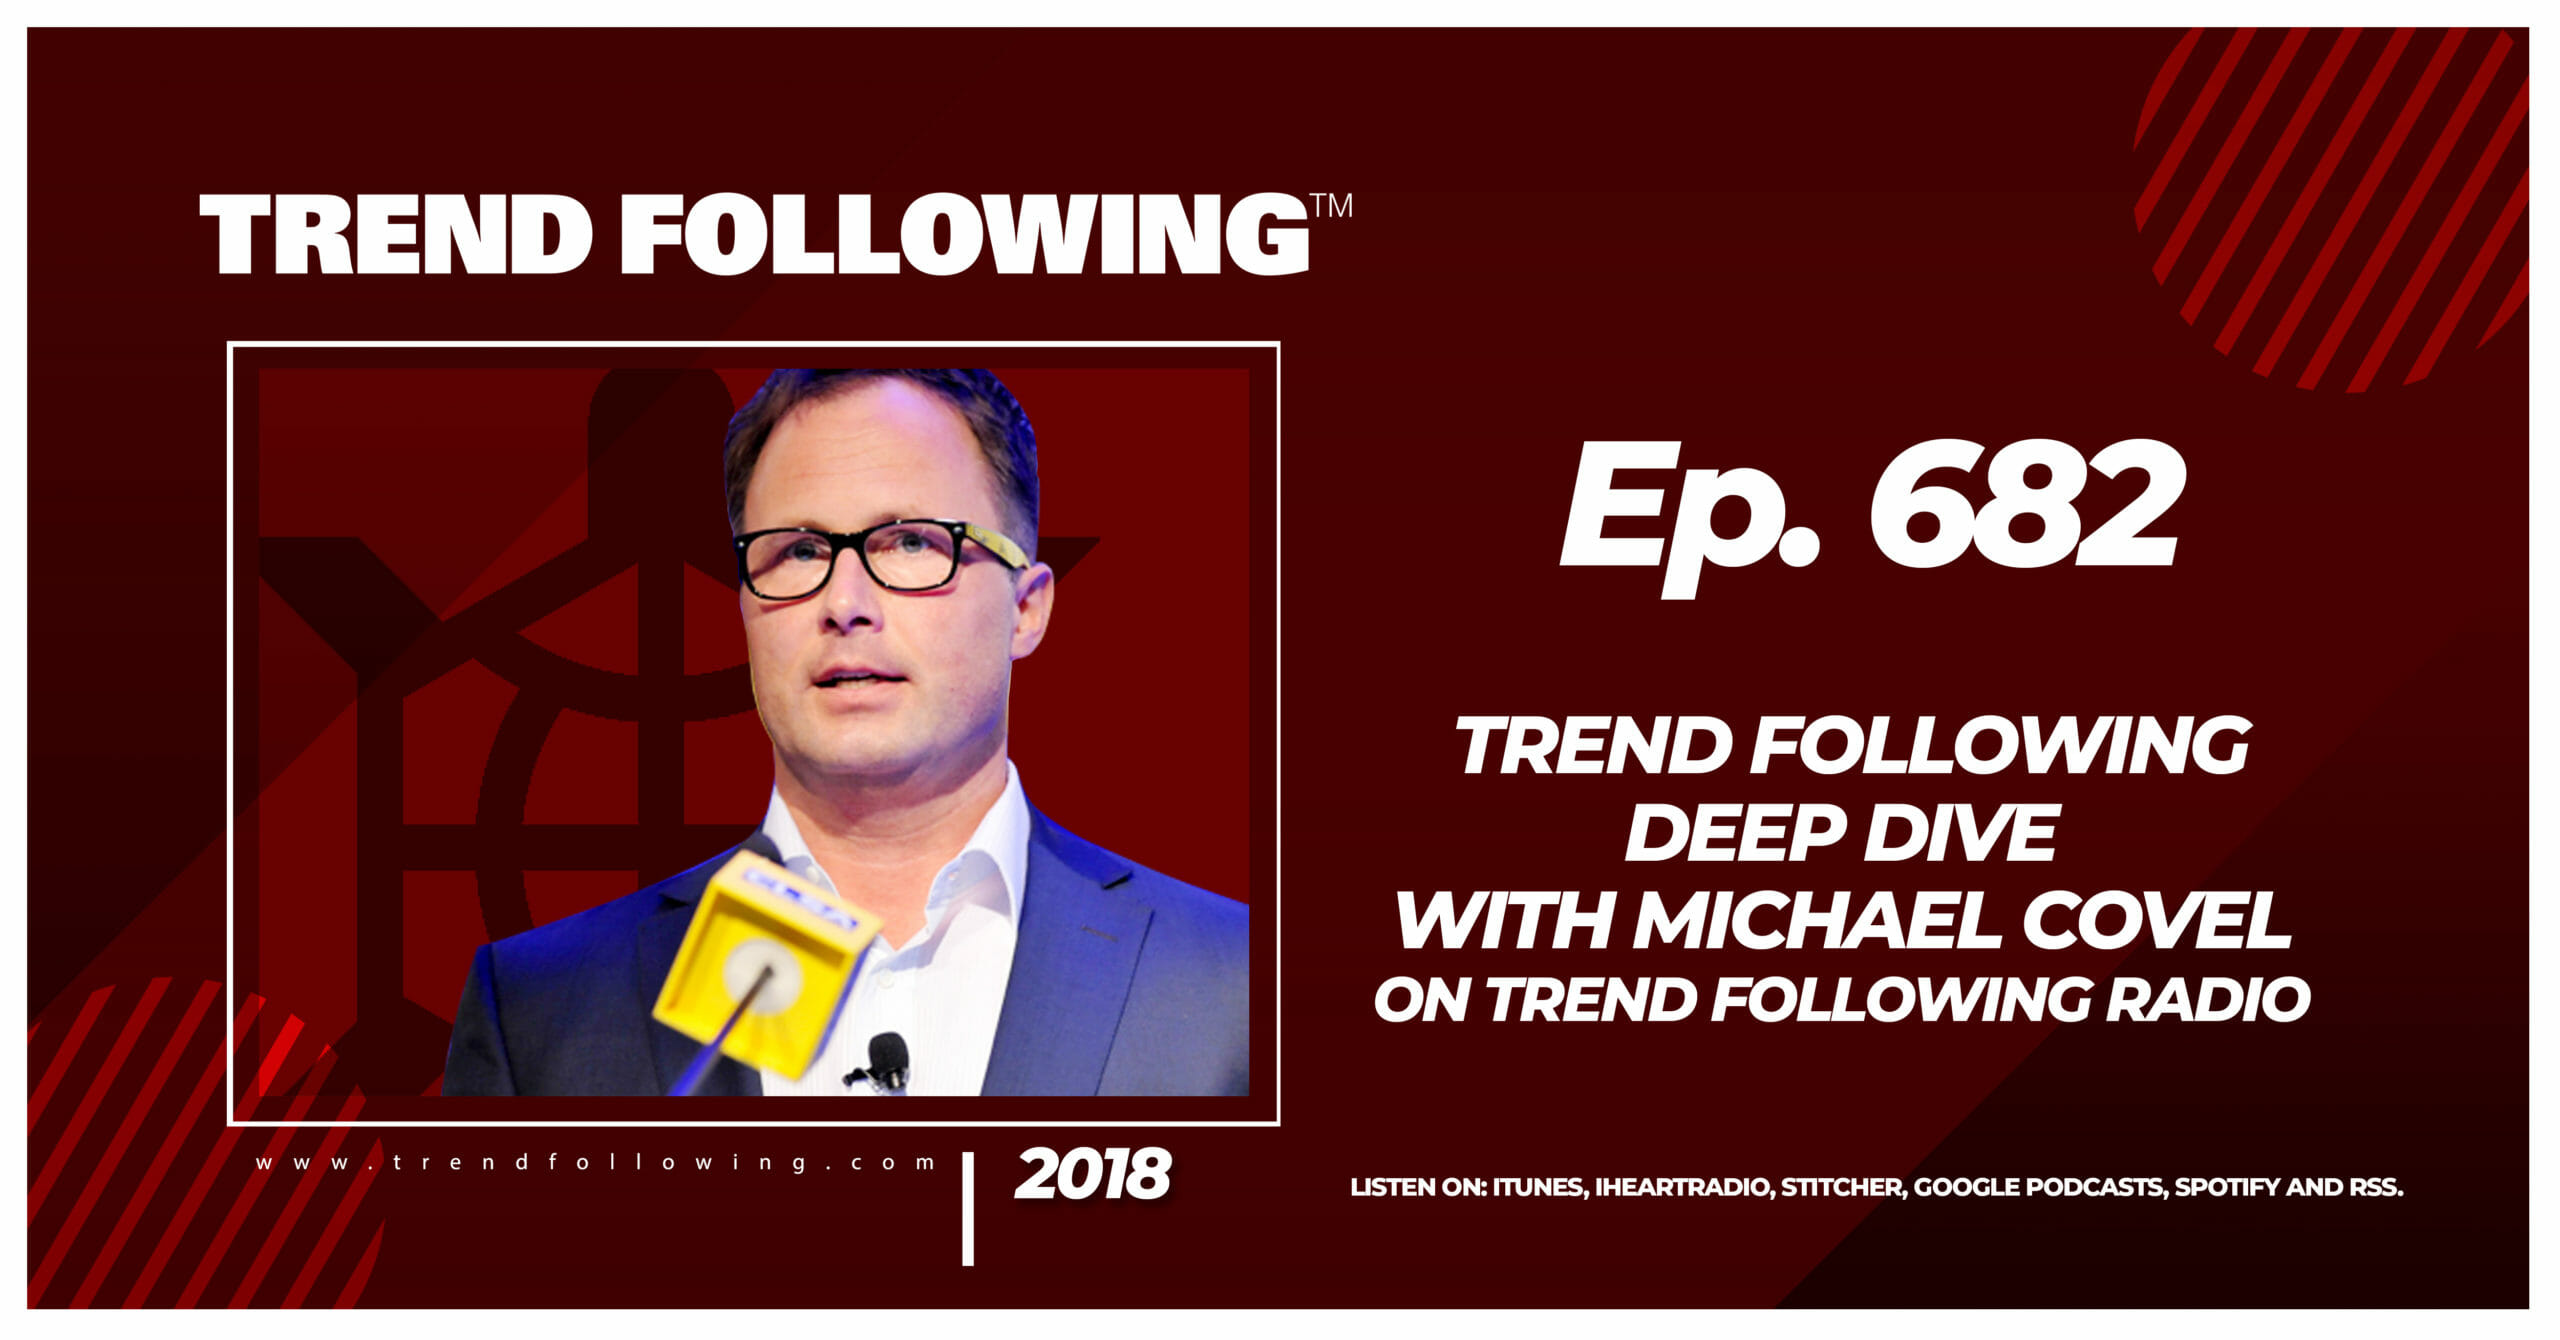 Trend Following Deep Dive with Michael Covel